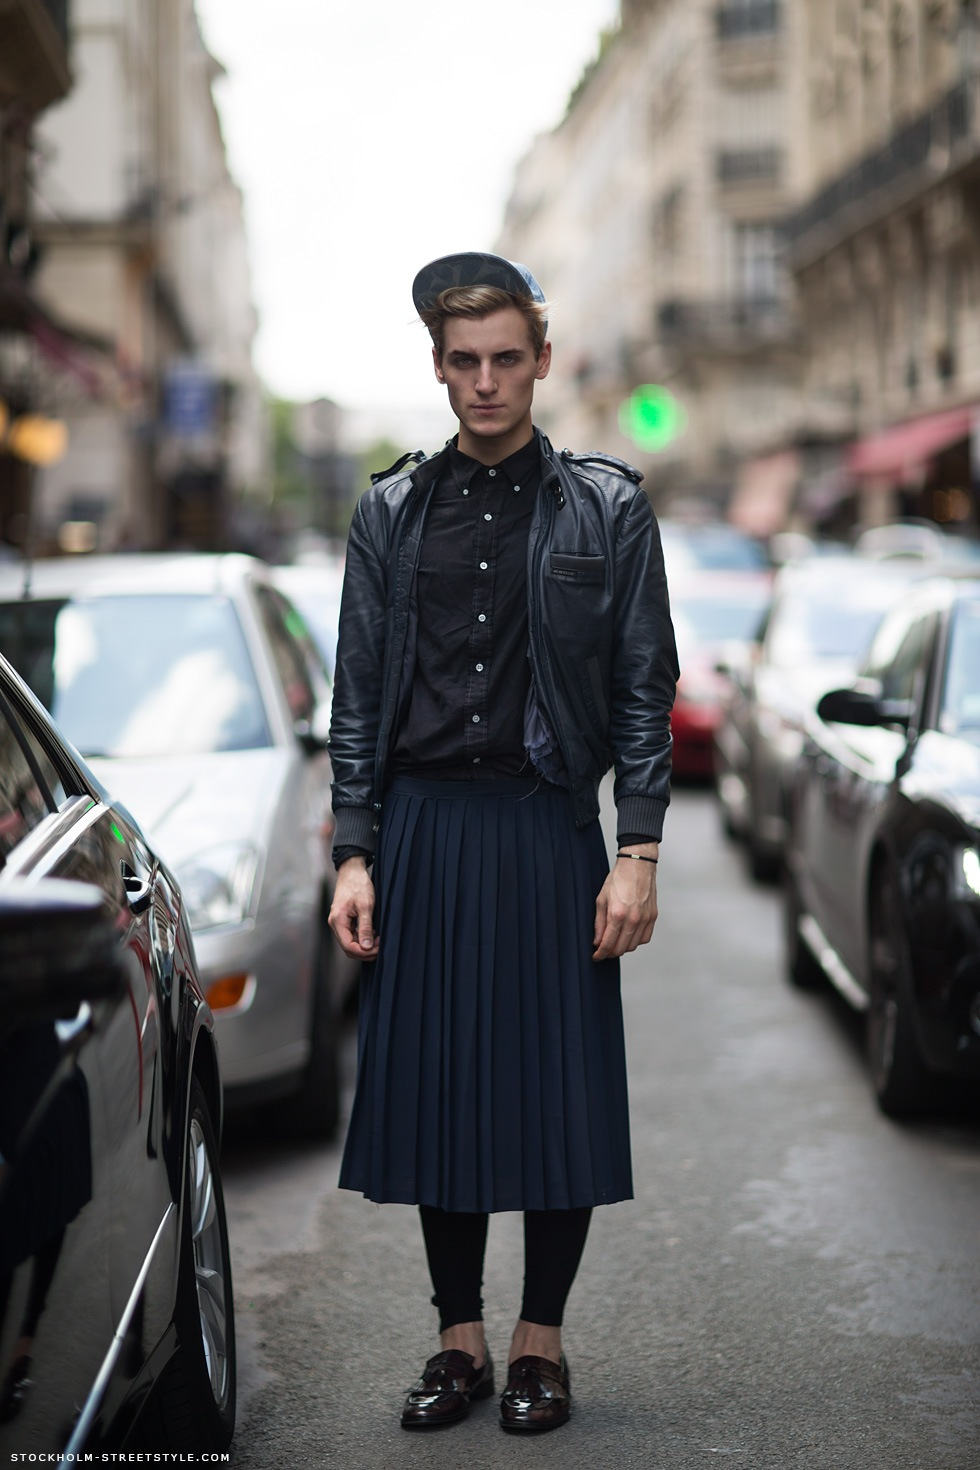 Leather Skirts For Men 2014-2015